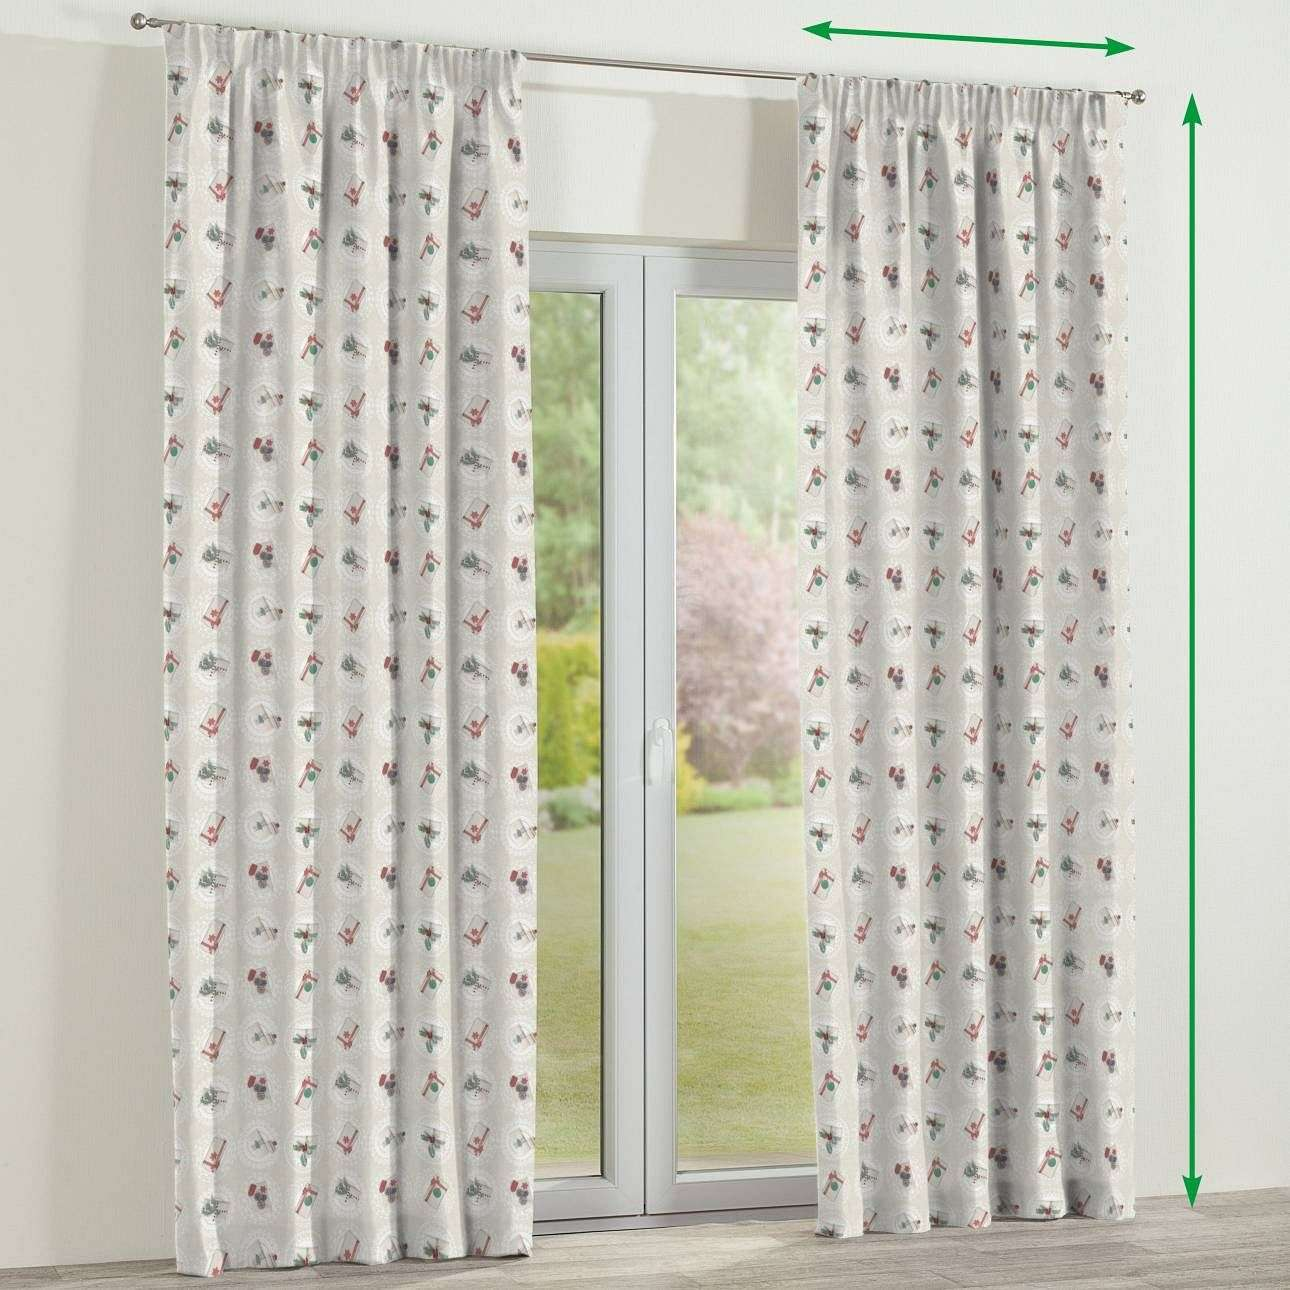 Pencil pleat curtains in collection Christmas , fabric: 629-30